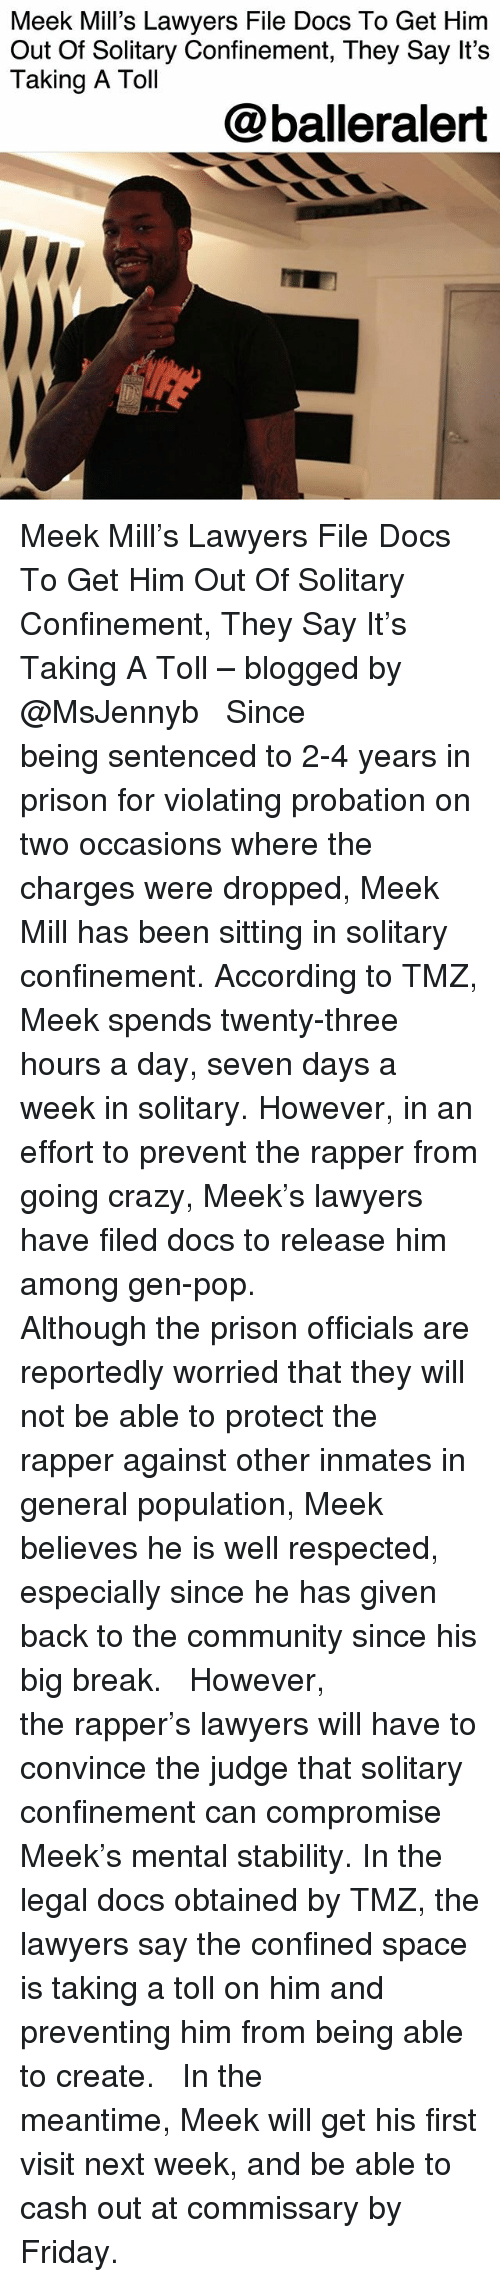 Community, Crazy, and Friday: Meek Mill's Lawyers File Docs To Get Him  Out Of Solitary Confinement, They Say It's  Taking A Toll  @balleralert Meek Mill's Lawyers File Docs To Get Him Out Of Solitary Confinement, They Say It's Taking A Toll – blogged by @MsJennyb ⠀⠀⠀⠀⠀⠀⠀ ⠀⠀⠀⠀⠀⠀⠀ Since being sentenced to 2-4 years in prison for violating probation on two occasions where the charges were dropped, Meek Mill has been sitting in solitary confinement. According to TMZ, Meek spends twenty-three hours a day, seven days a week in solitary. However, in an effort to prevent the rapper from going crazy, Meek's lawyers have filed docs to release him among gen-pop. ⠀⠀⠀⠀⠀⠀⠀ ⠀⠀⠀⠀⠀⠀⠀ Although the prison officials are reportedly worried that they will not be able to protect the rapper against other inmates in general population, Meek believes he is well respected, especially since he has given back to the community since his big break. ⠀⠀⠀⠀⠀⠀⠀ ⠀⠀⠀⠀⠀⠀⠀ However, the rapper's lawyers will have to convince the judge that solitary confinement can compromise Meek's mental stability. In the legal docs obtained by TMZ, the lawyers say the confined space is taking a toll on him and preventing him from being able to create. ⠀⠀⠀⠀⠀⠀⠀ ⠀⠀⠀⠀⠀⠀⠀ In the meantime, Meek will get his first visit next week, and be able to cash out at commissary by Friday.